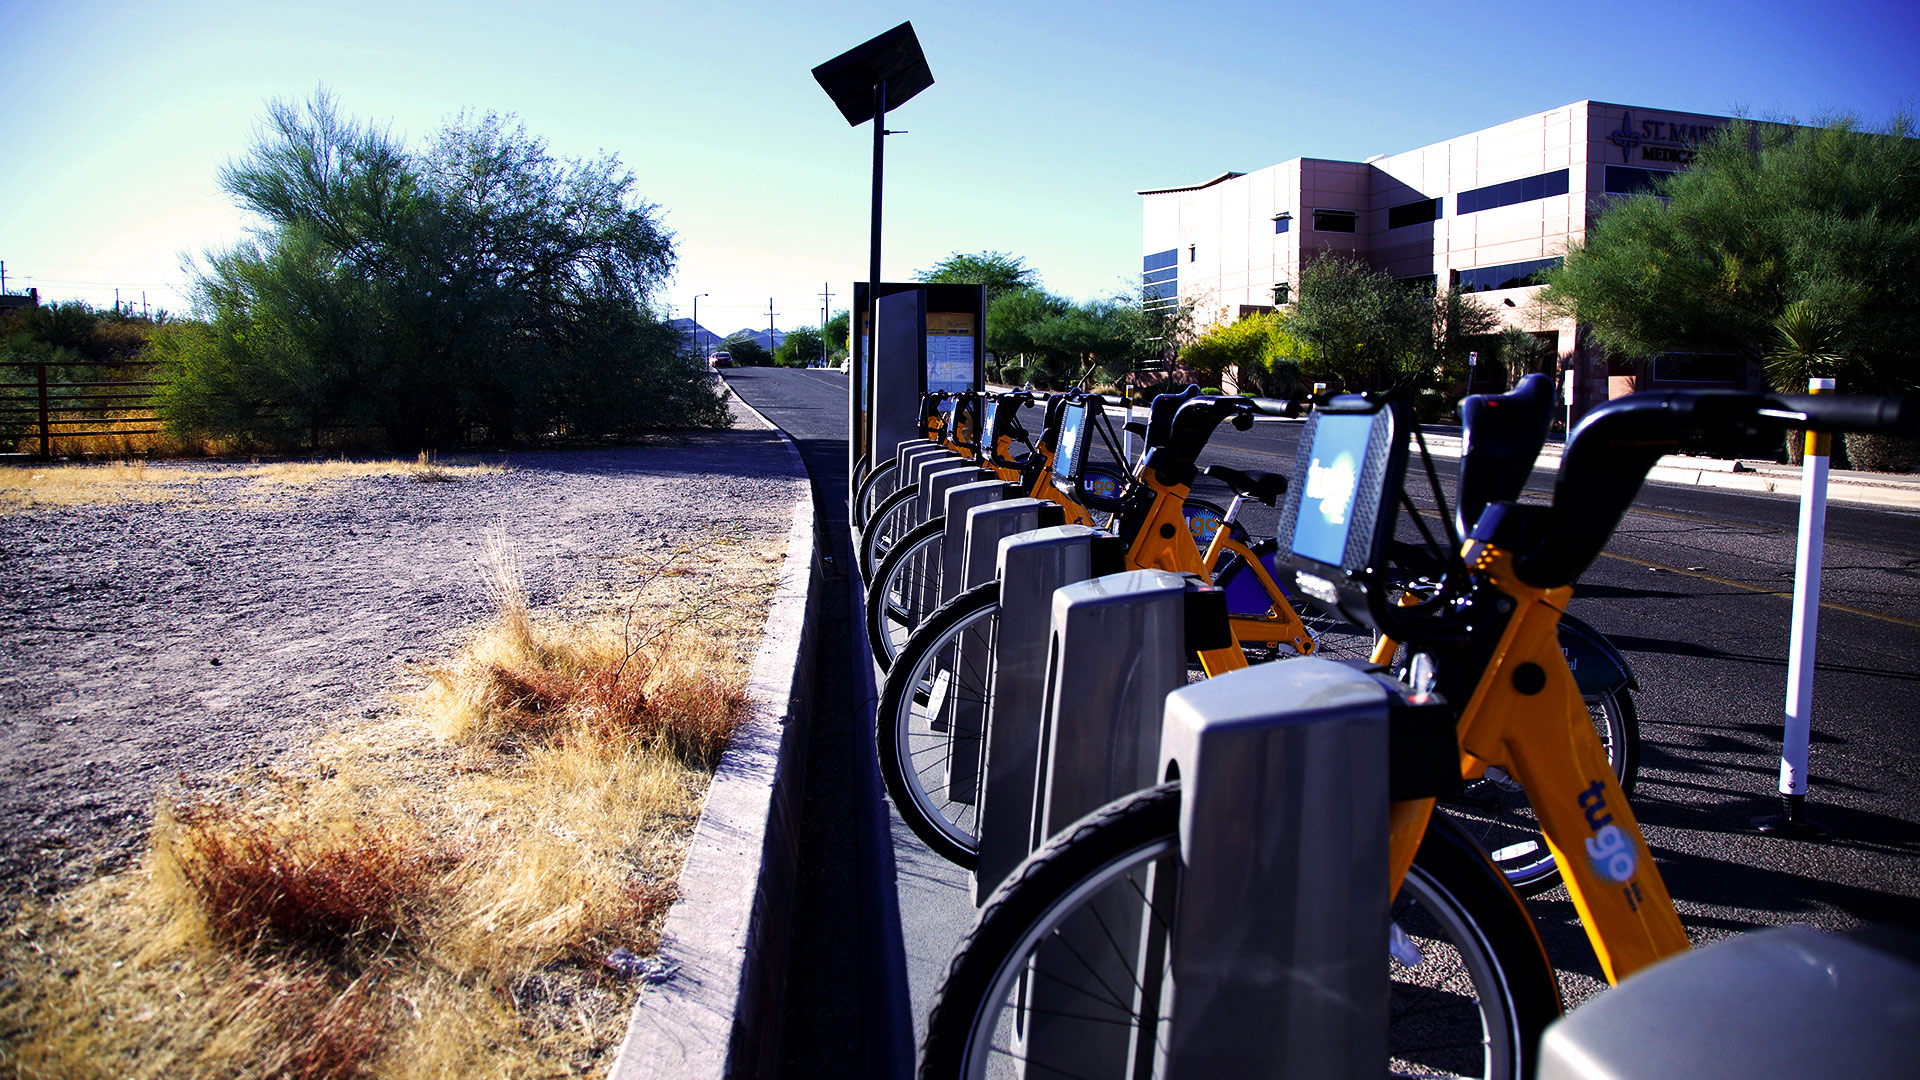 Bicycles for the Tugo city bike-share program near Tumamoc Hill on Tucson's west side.